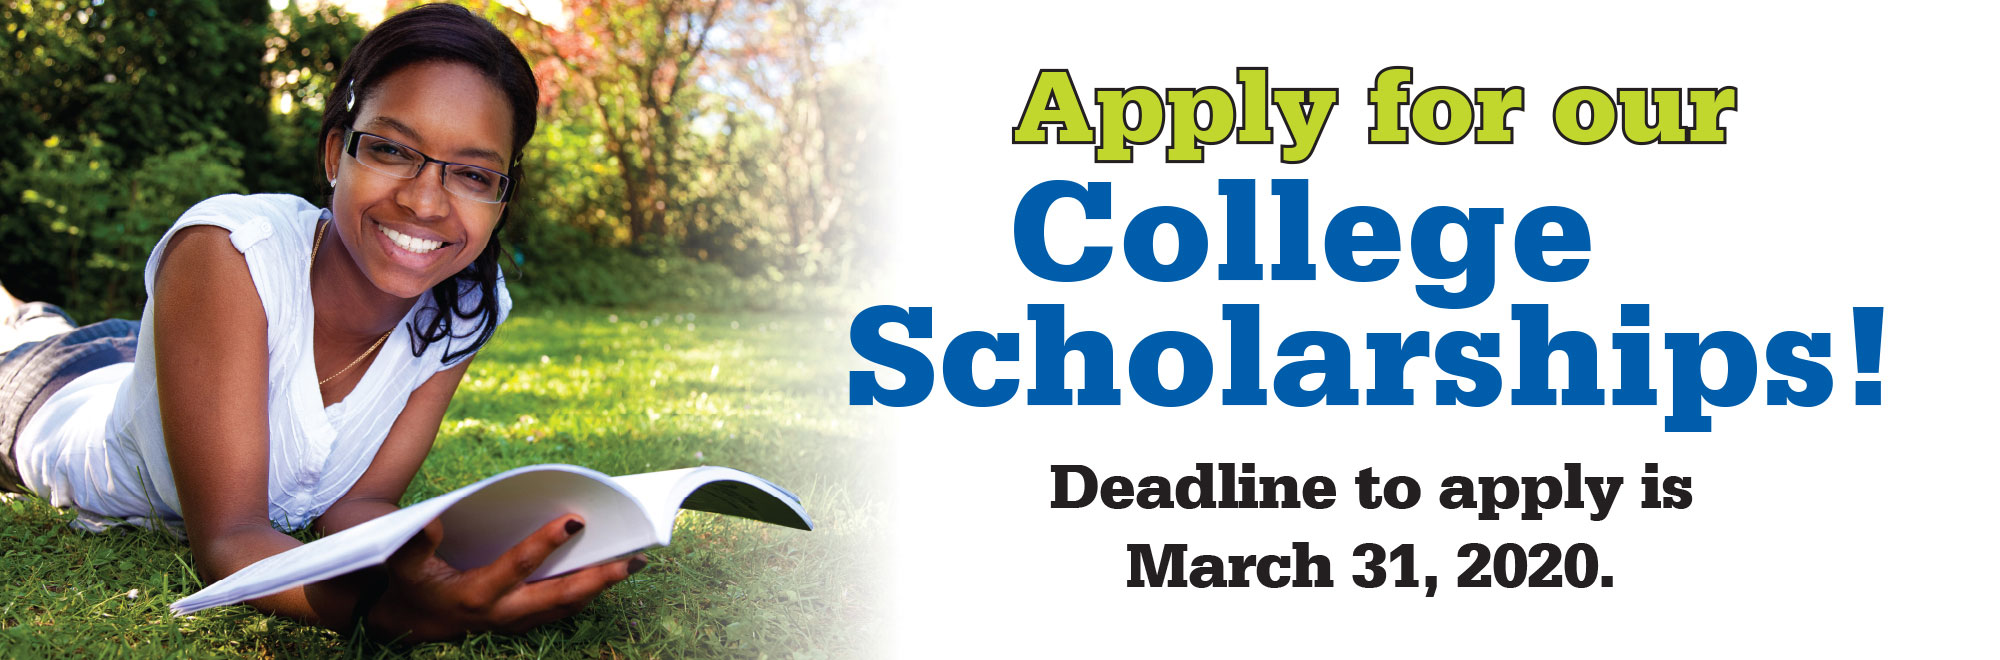 Apply for our College Scholarships by March 31, 2020